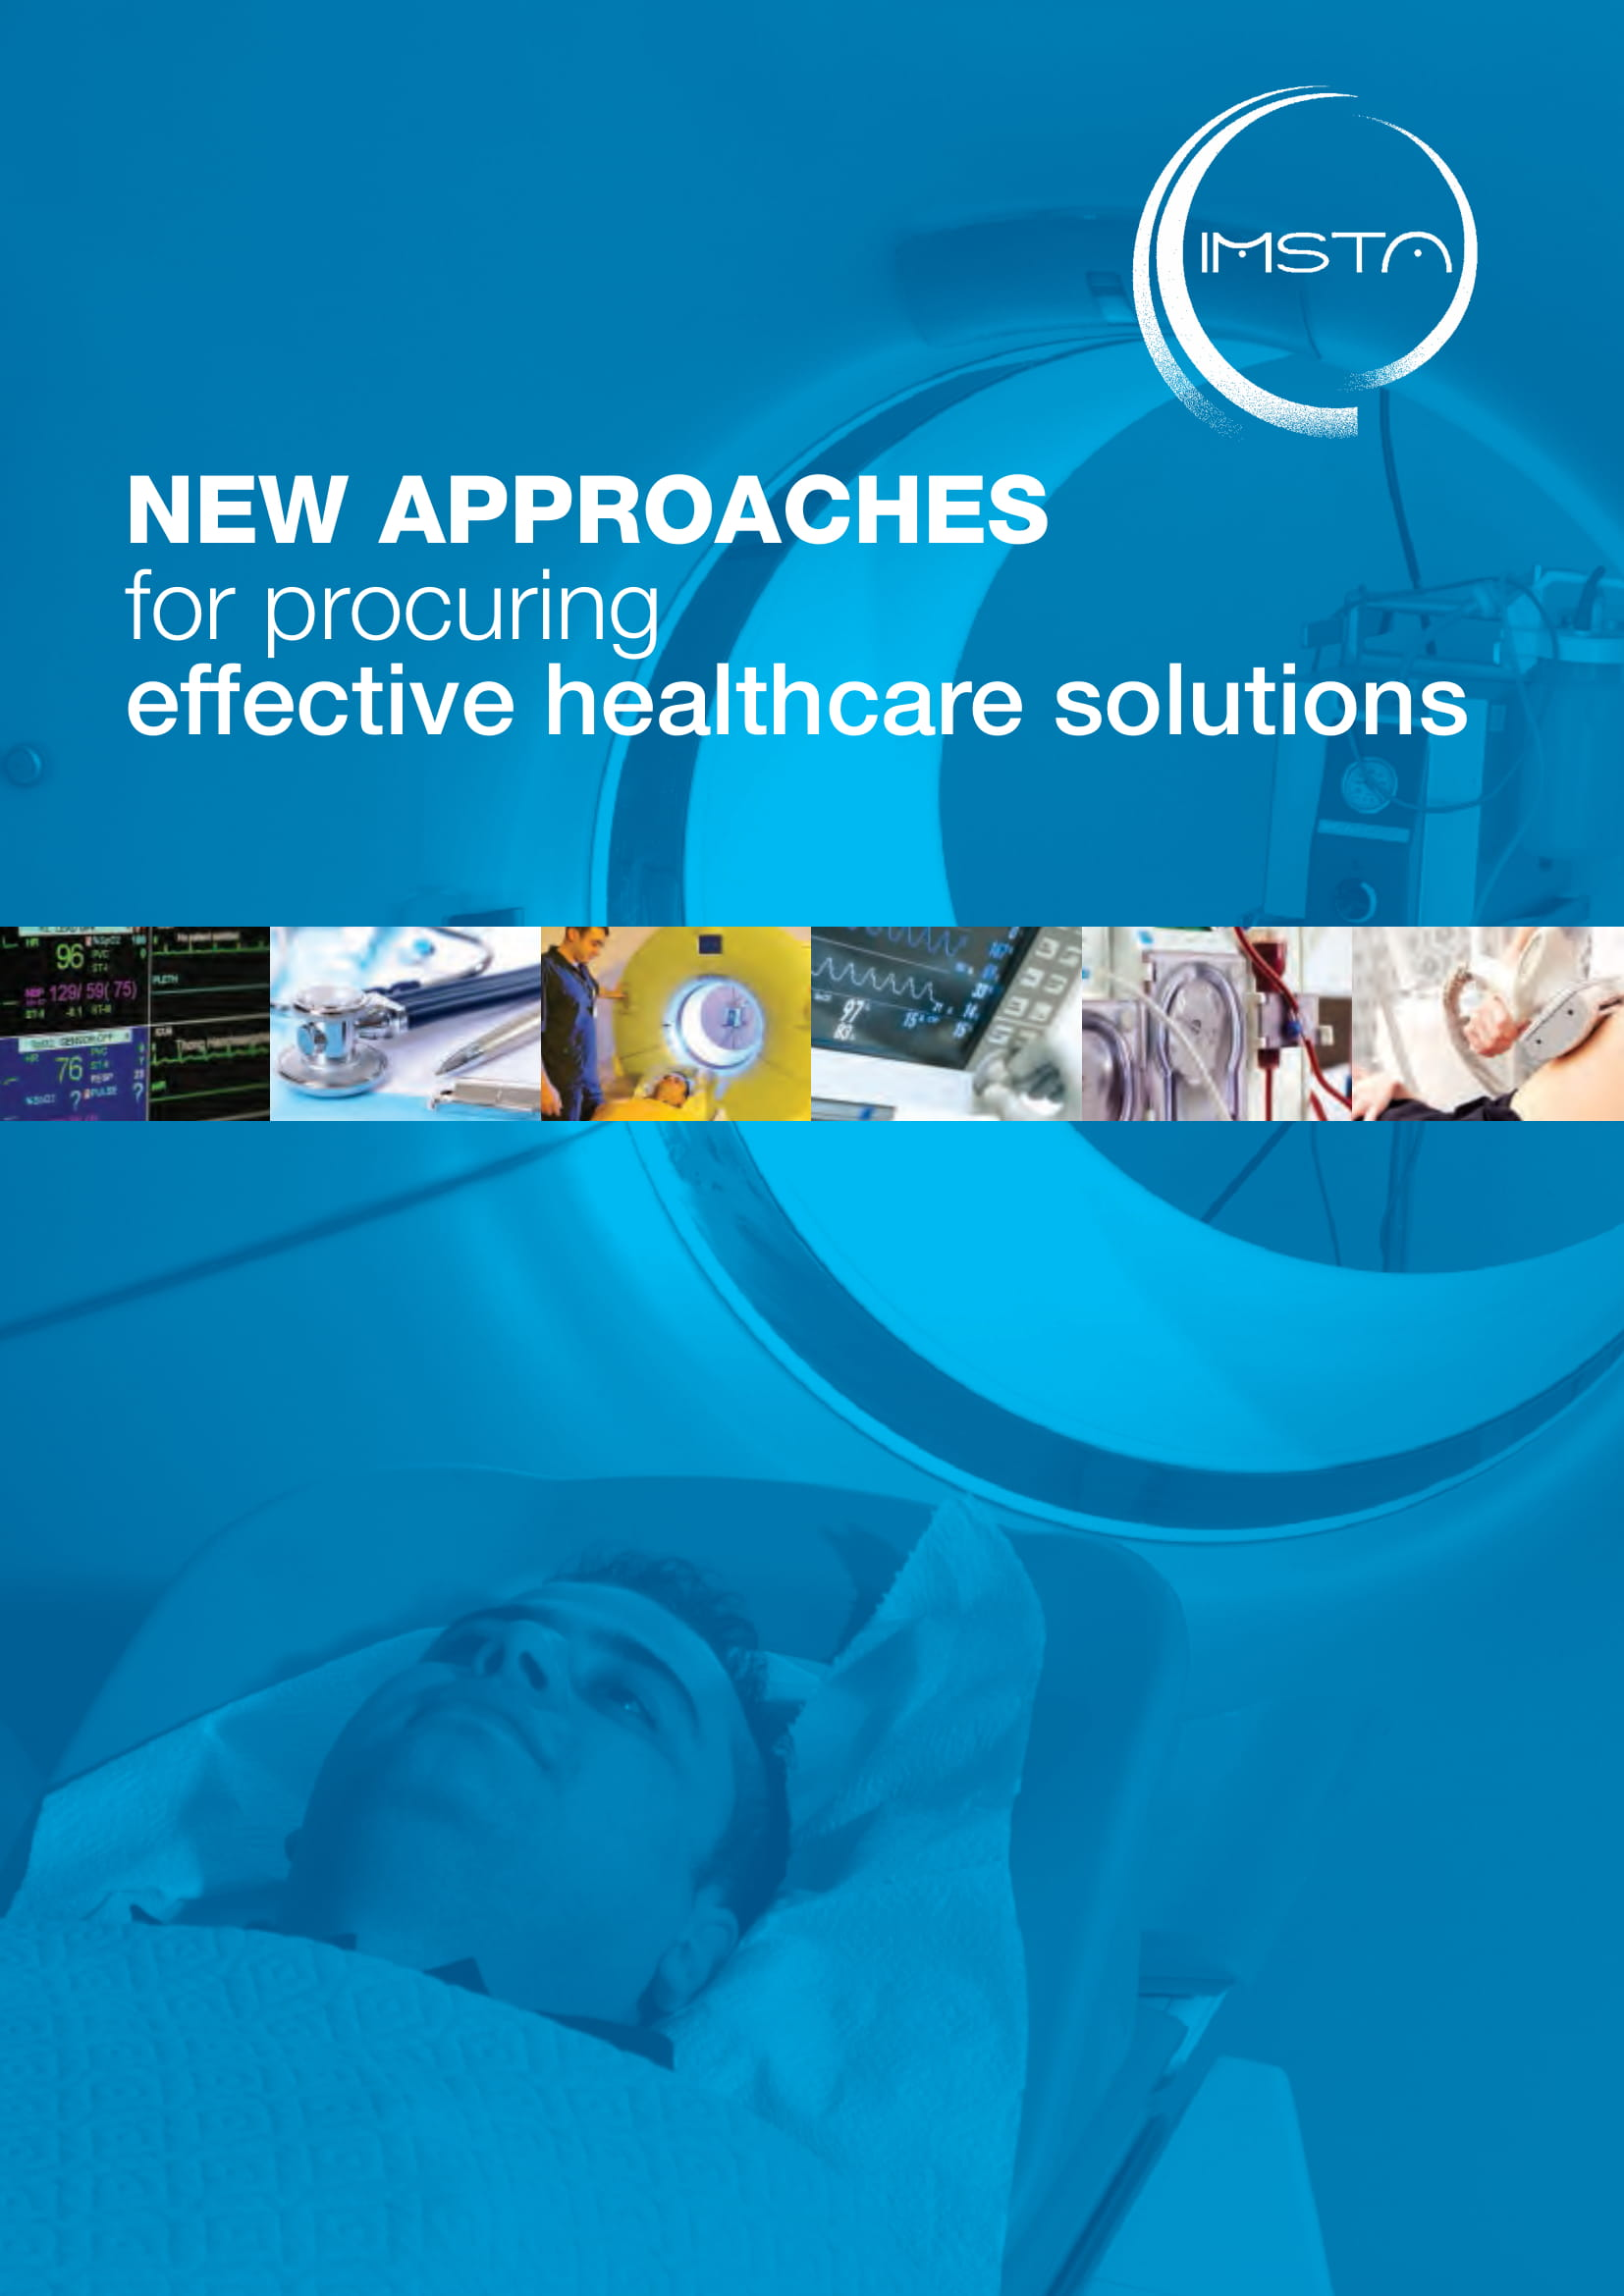 New Approaches for procuring effective healthcare solutions